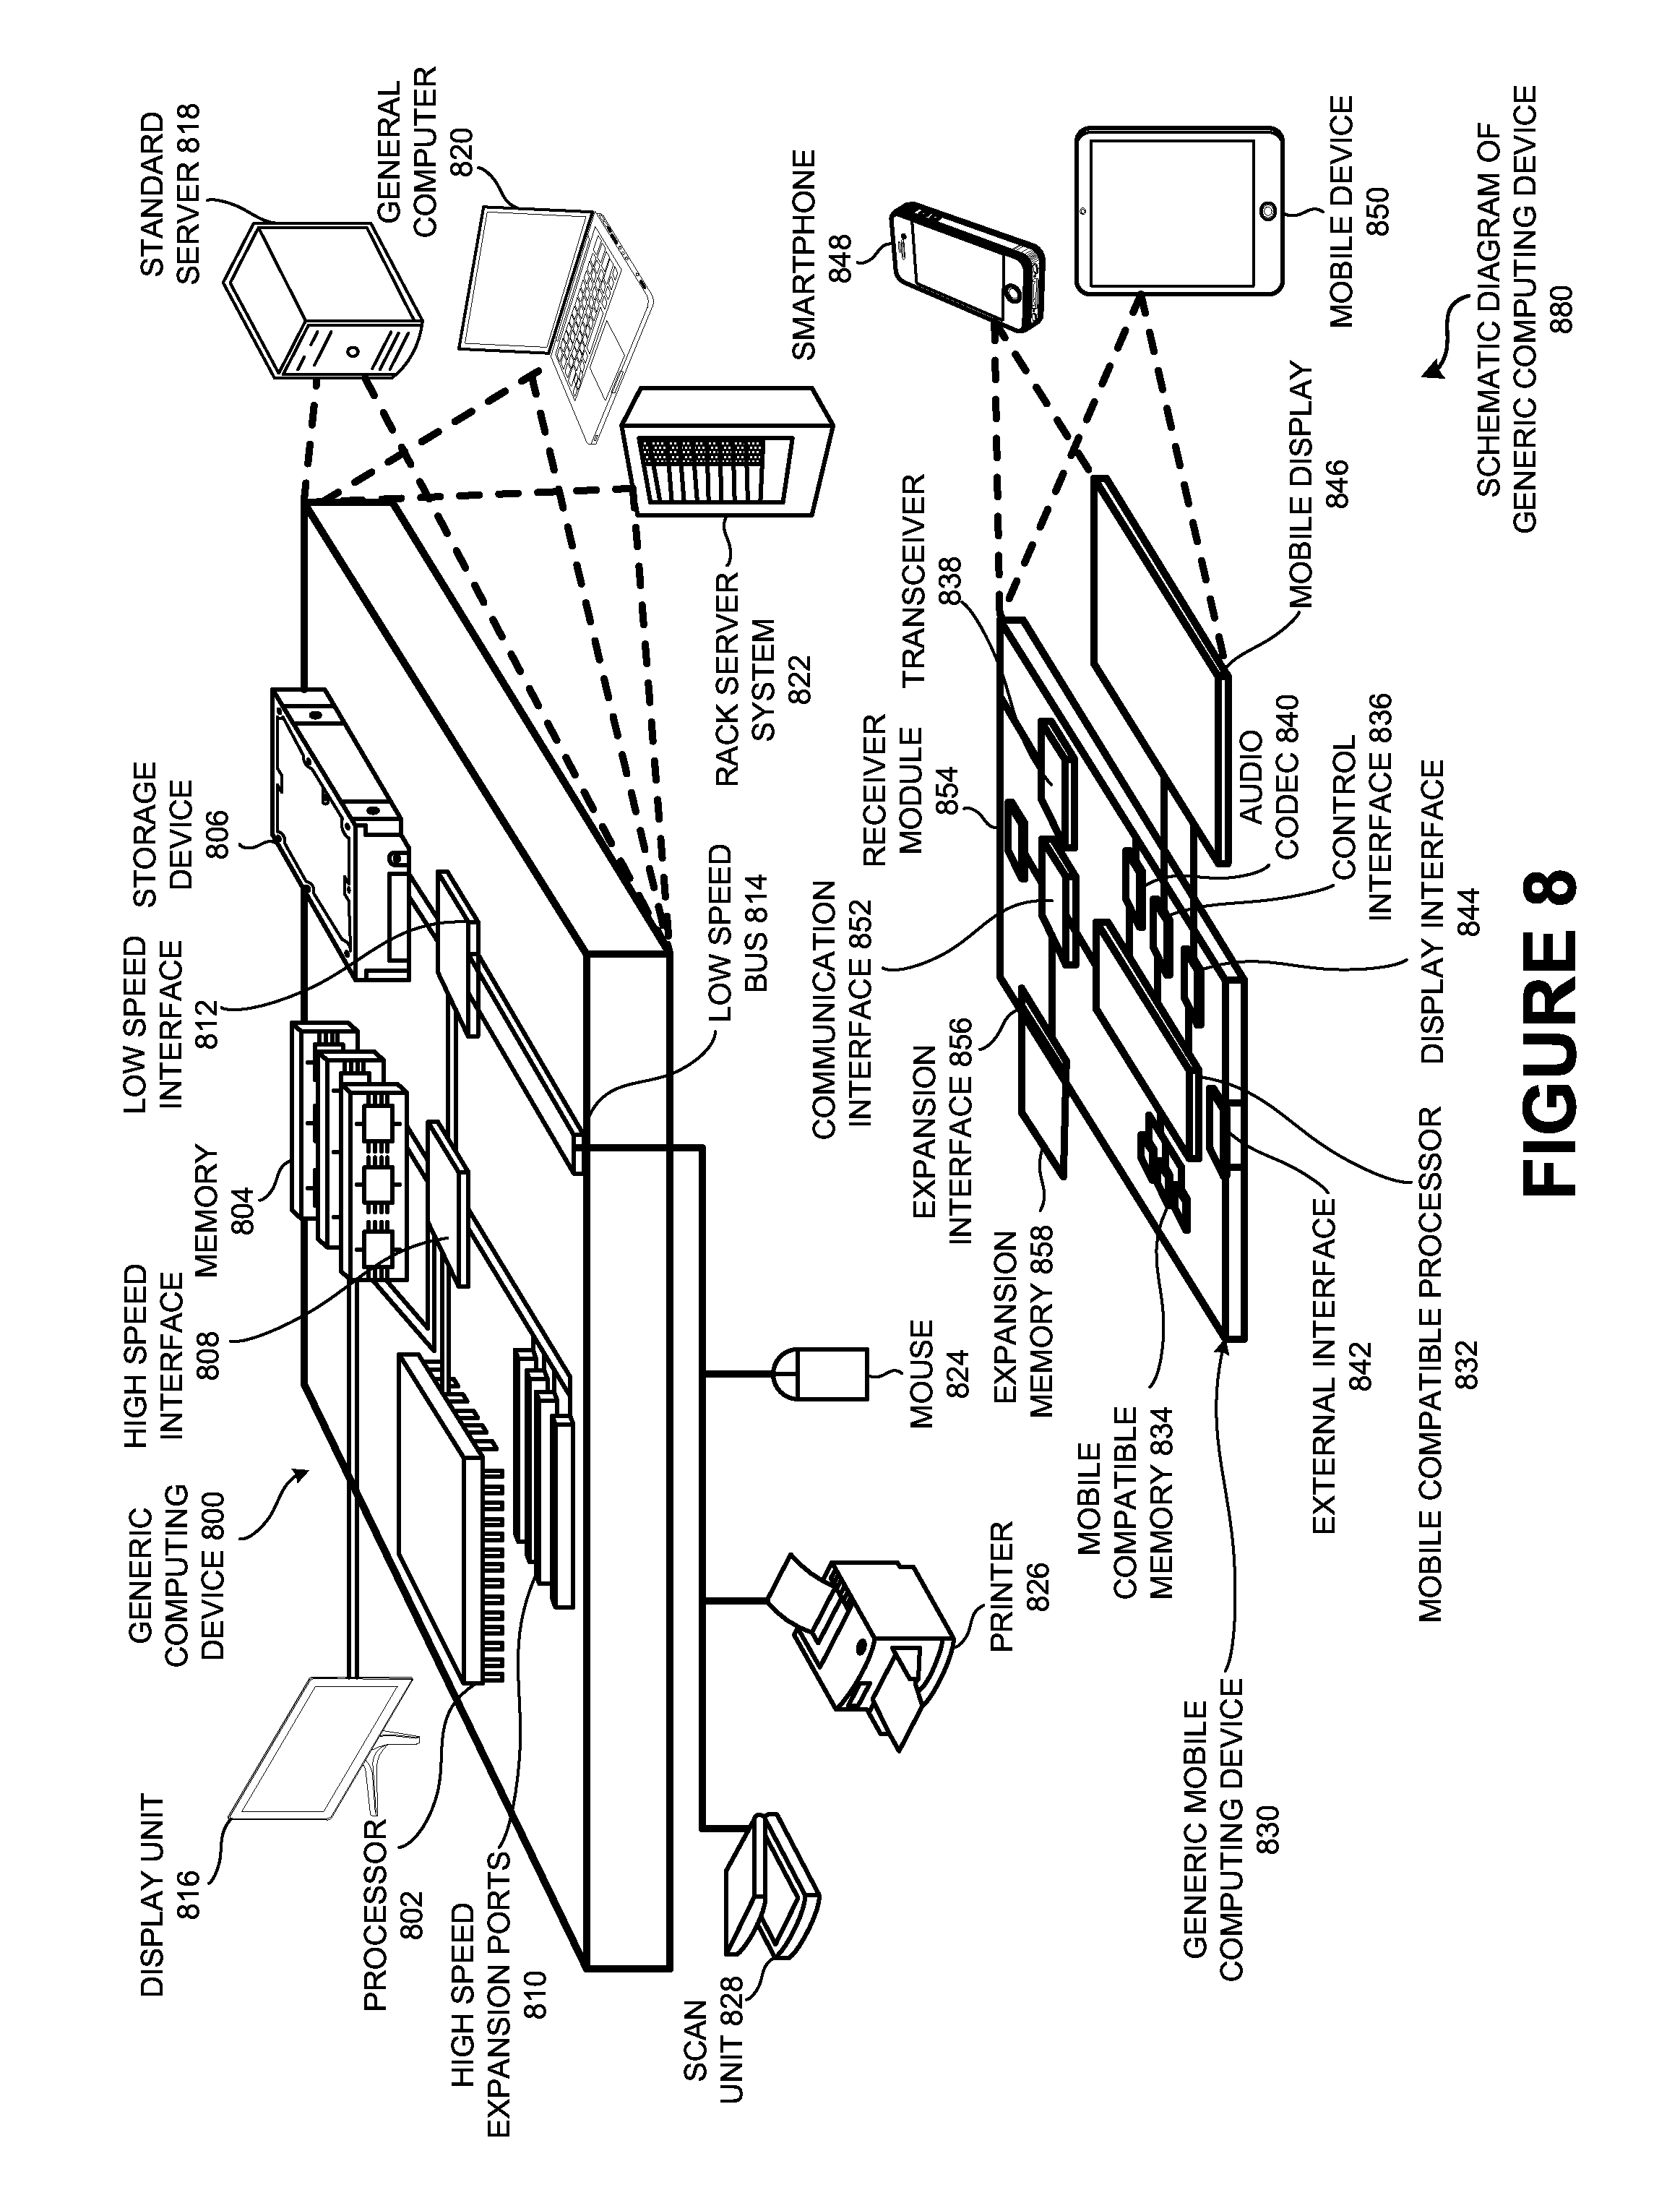 Patent Us 9551788 B2 Is A Typical Block Diagram Of Wireless Optical Mouse Transmitter 0 Petitions